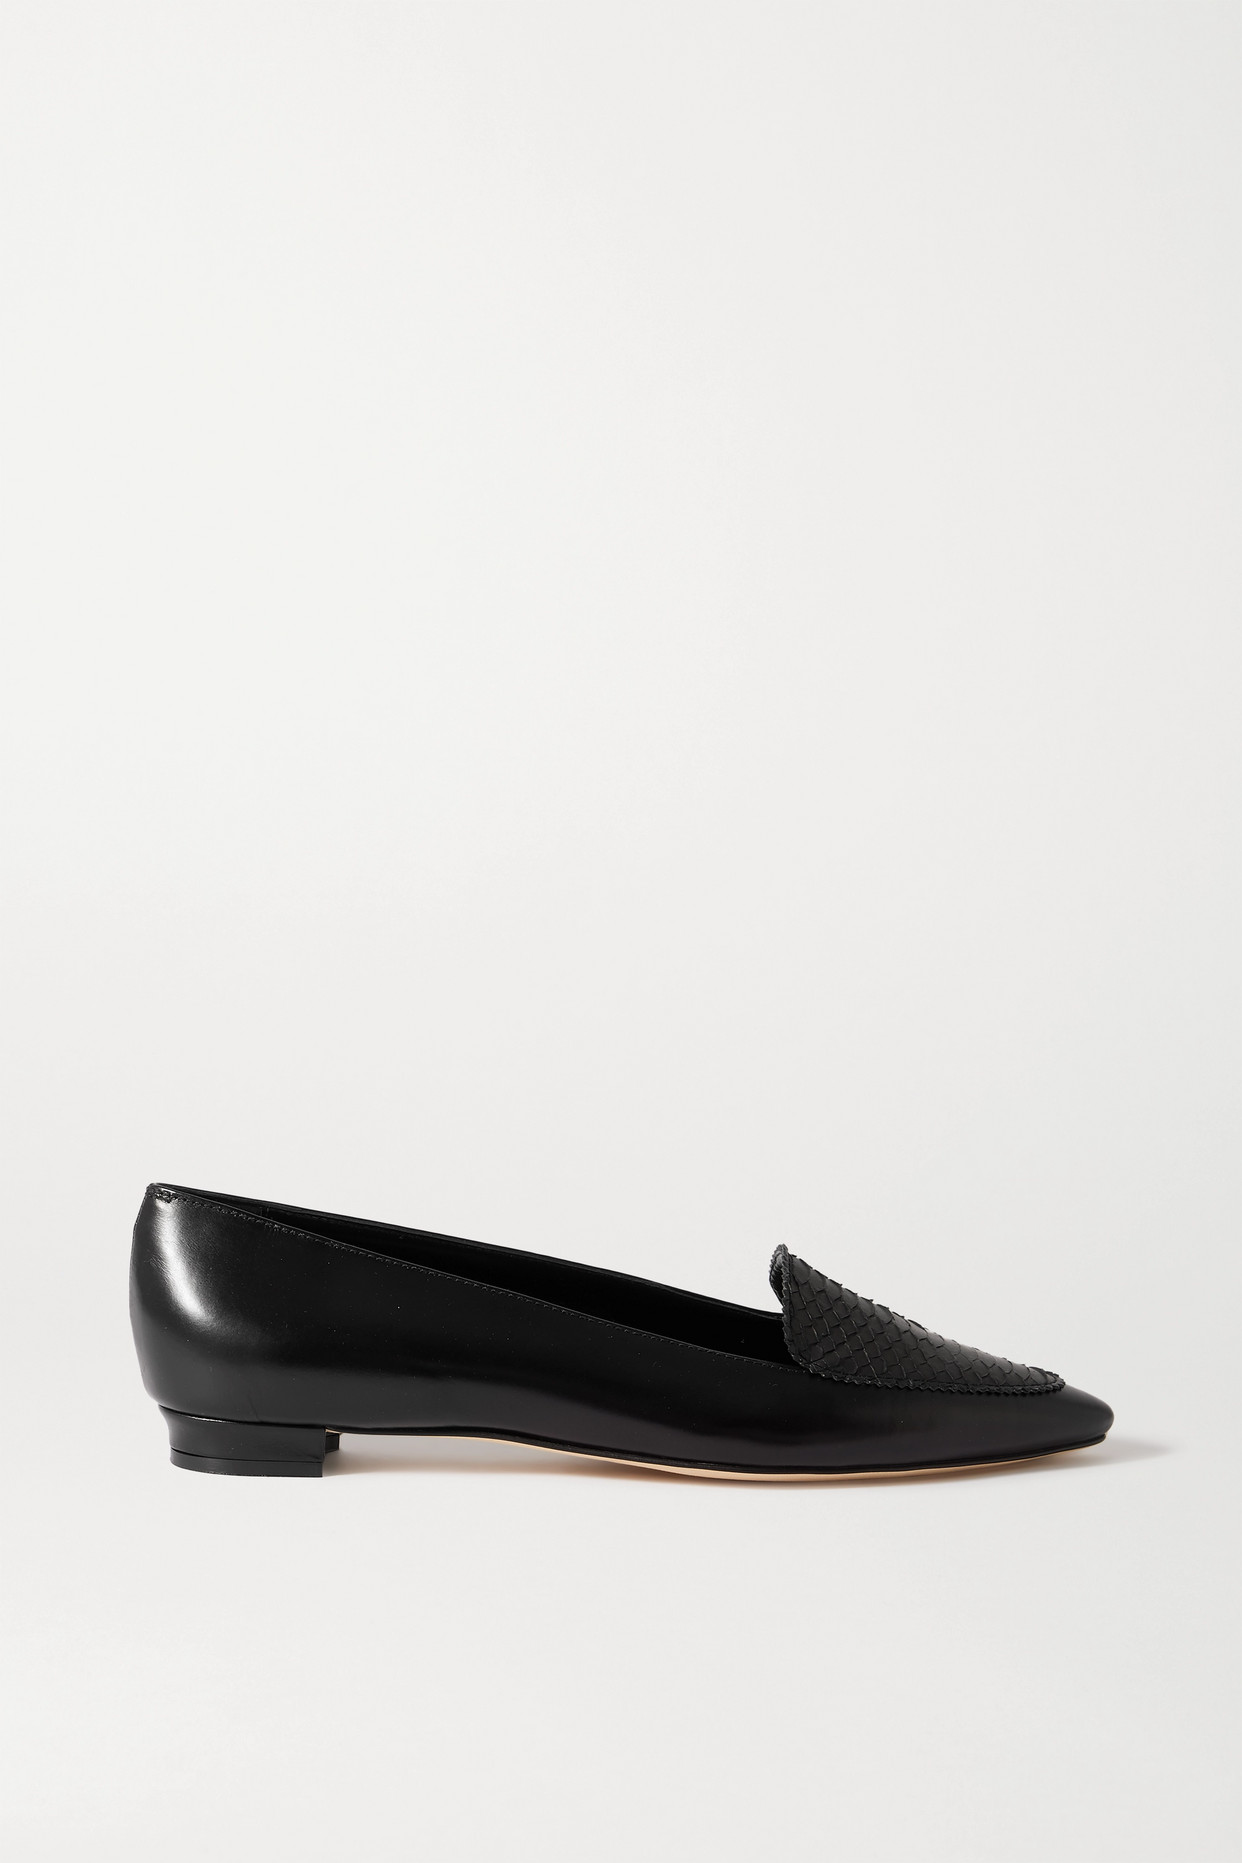 MANOLO BLAHNIK - Agos Leather And Watersnake Loafers - Black - IT35